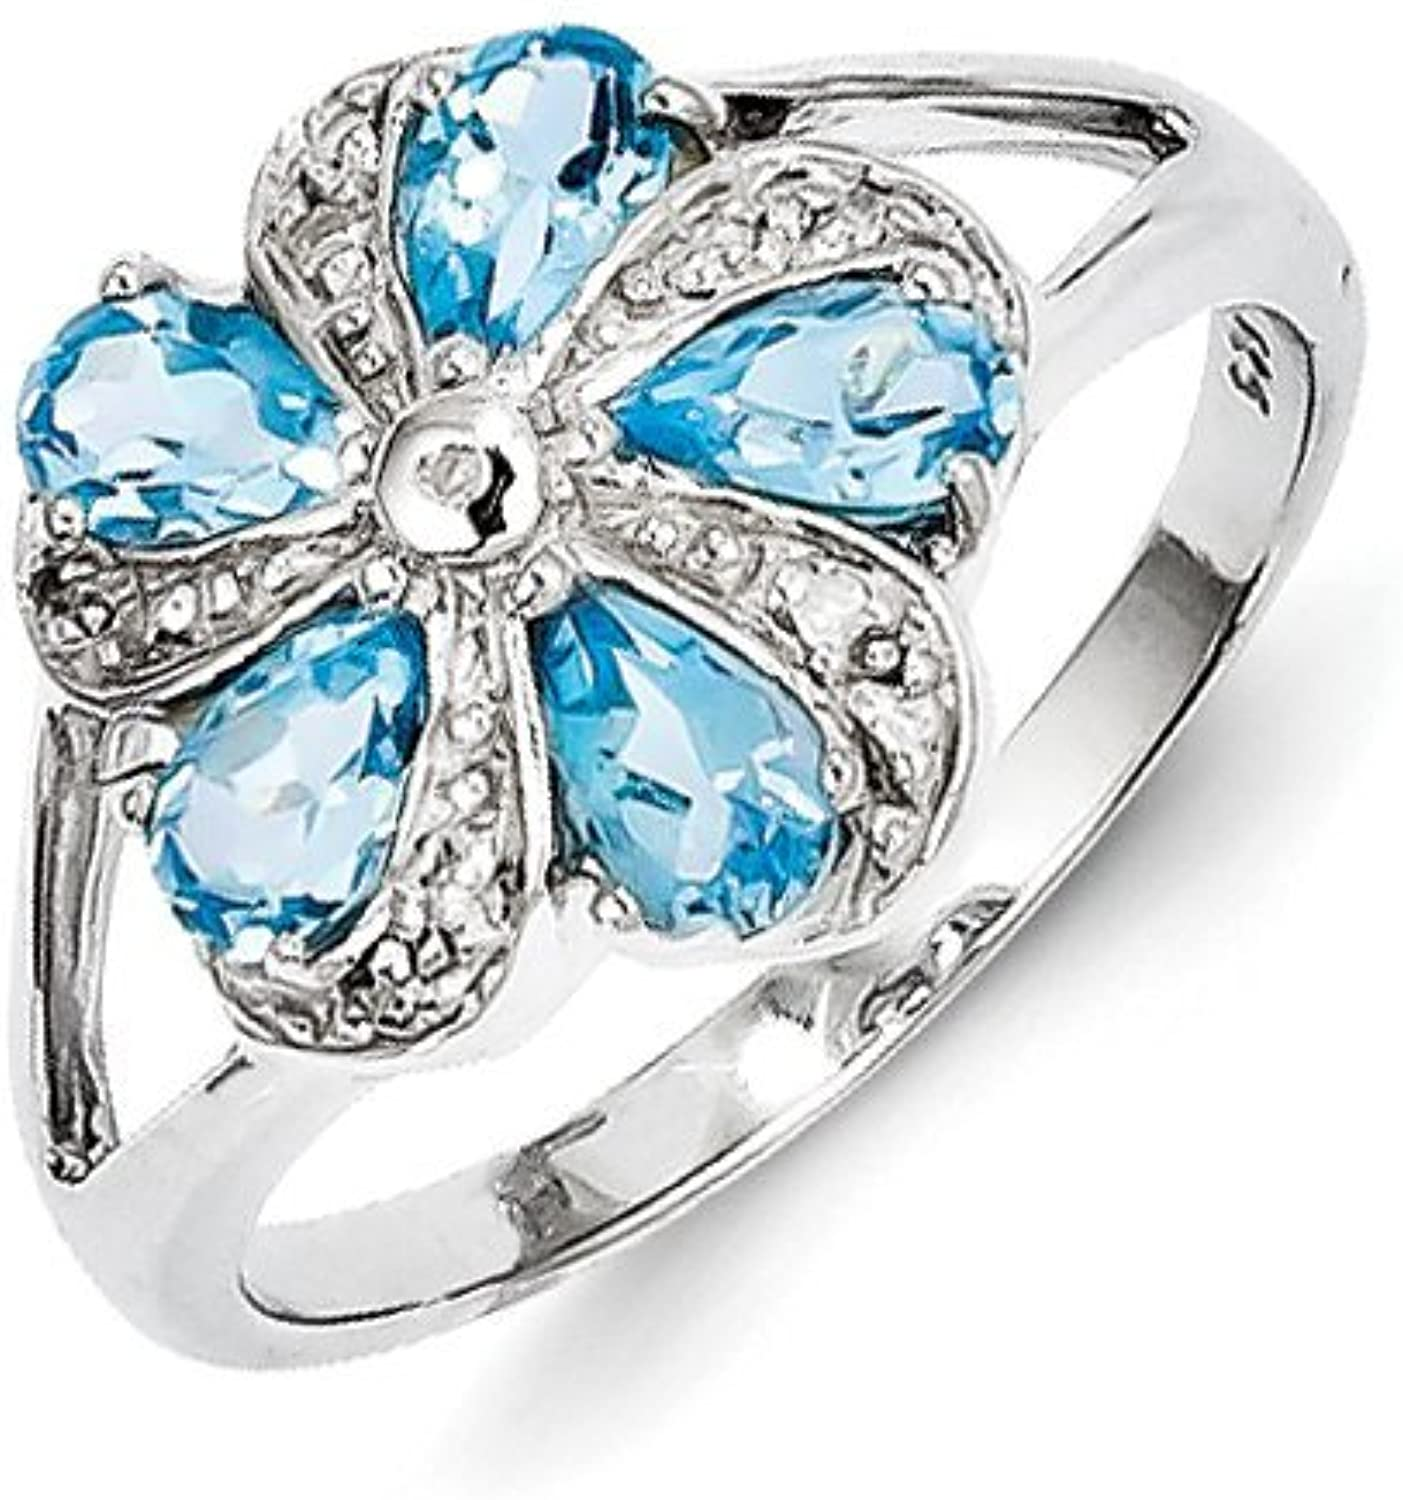 gold and Watches Sterling Silver Rhodium Light Swiss bluee Topaz Diamond Ring